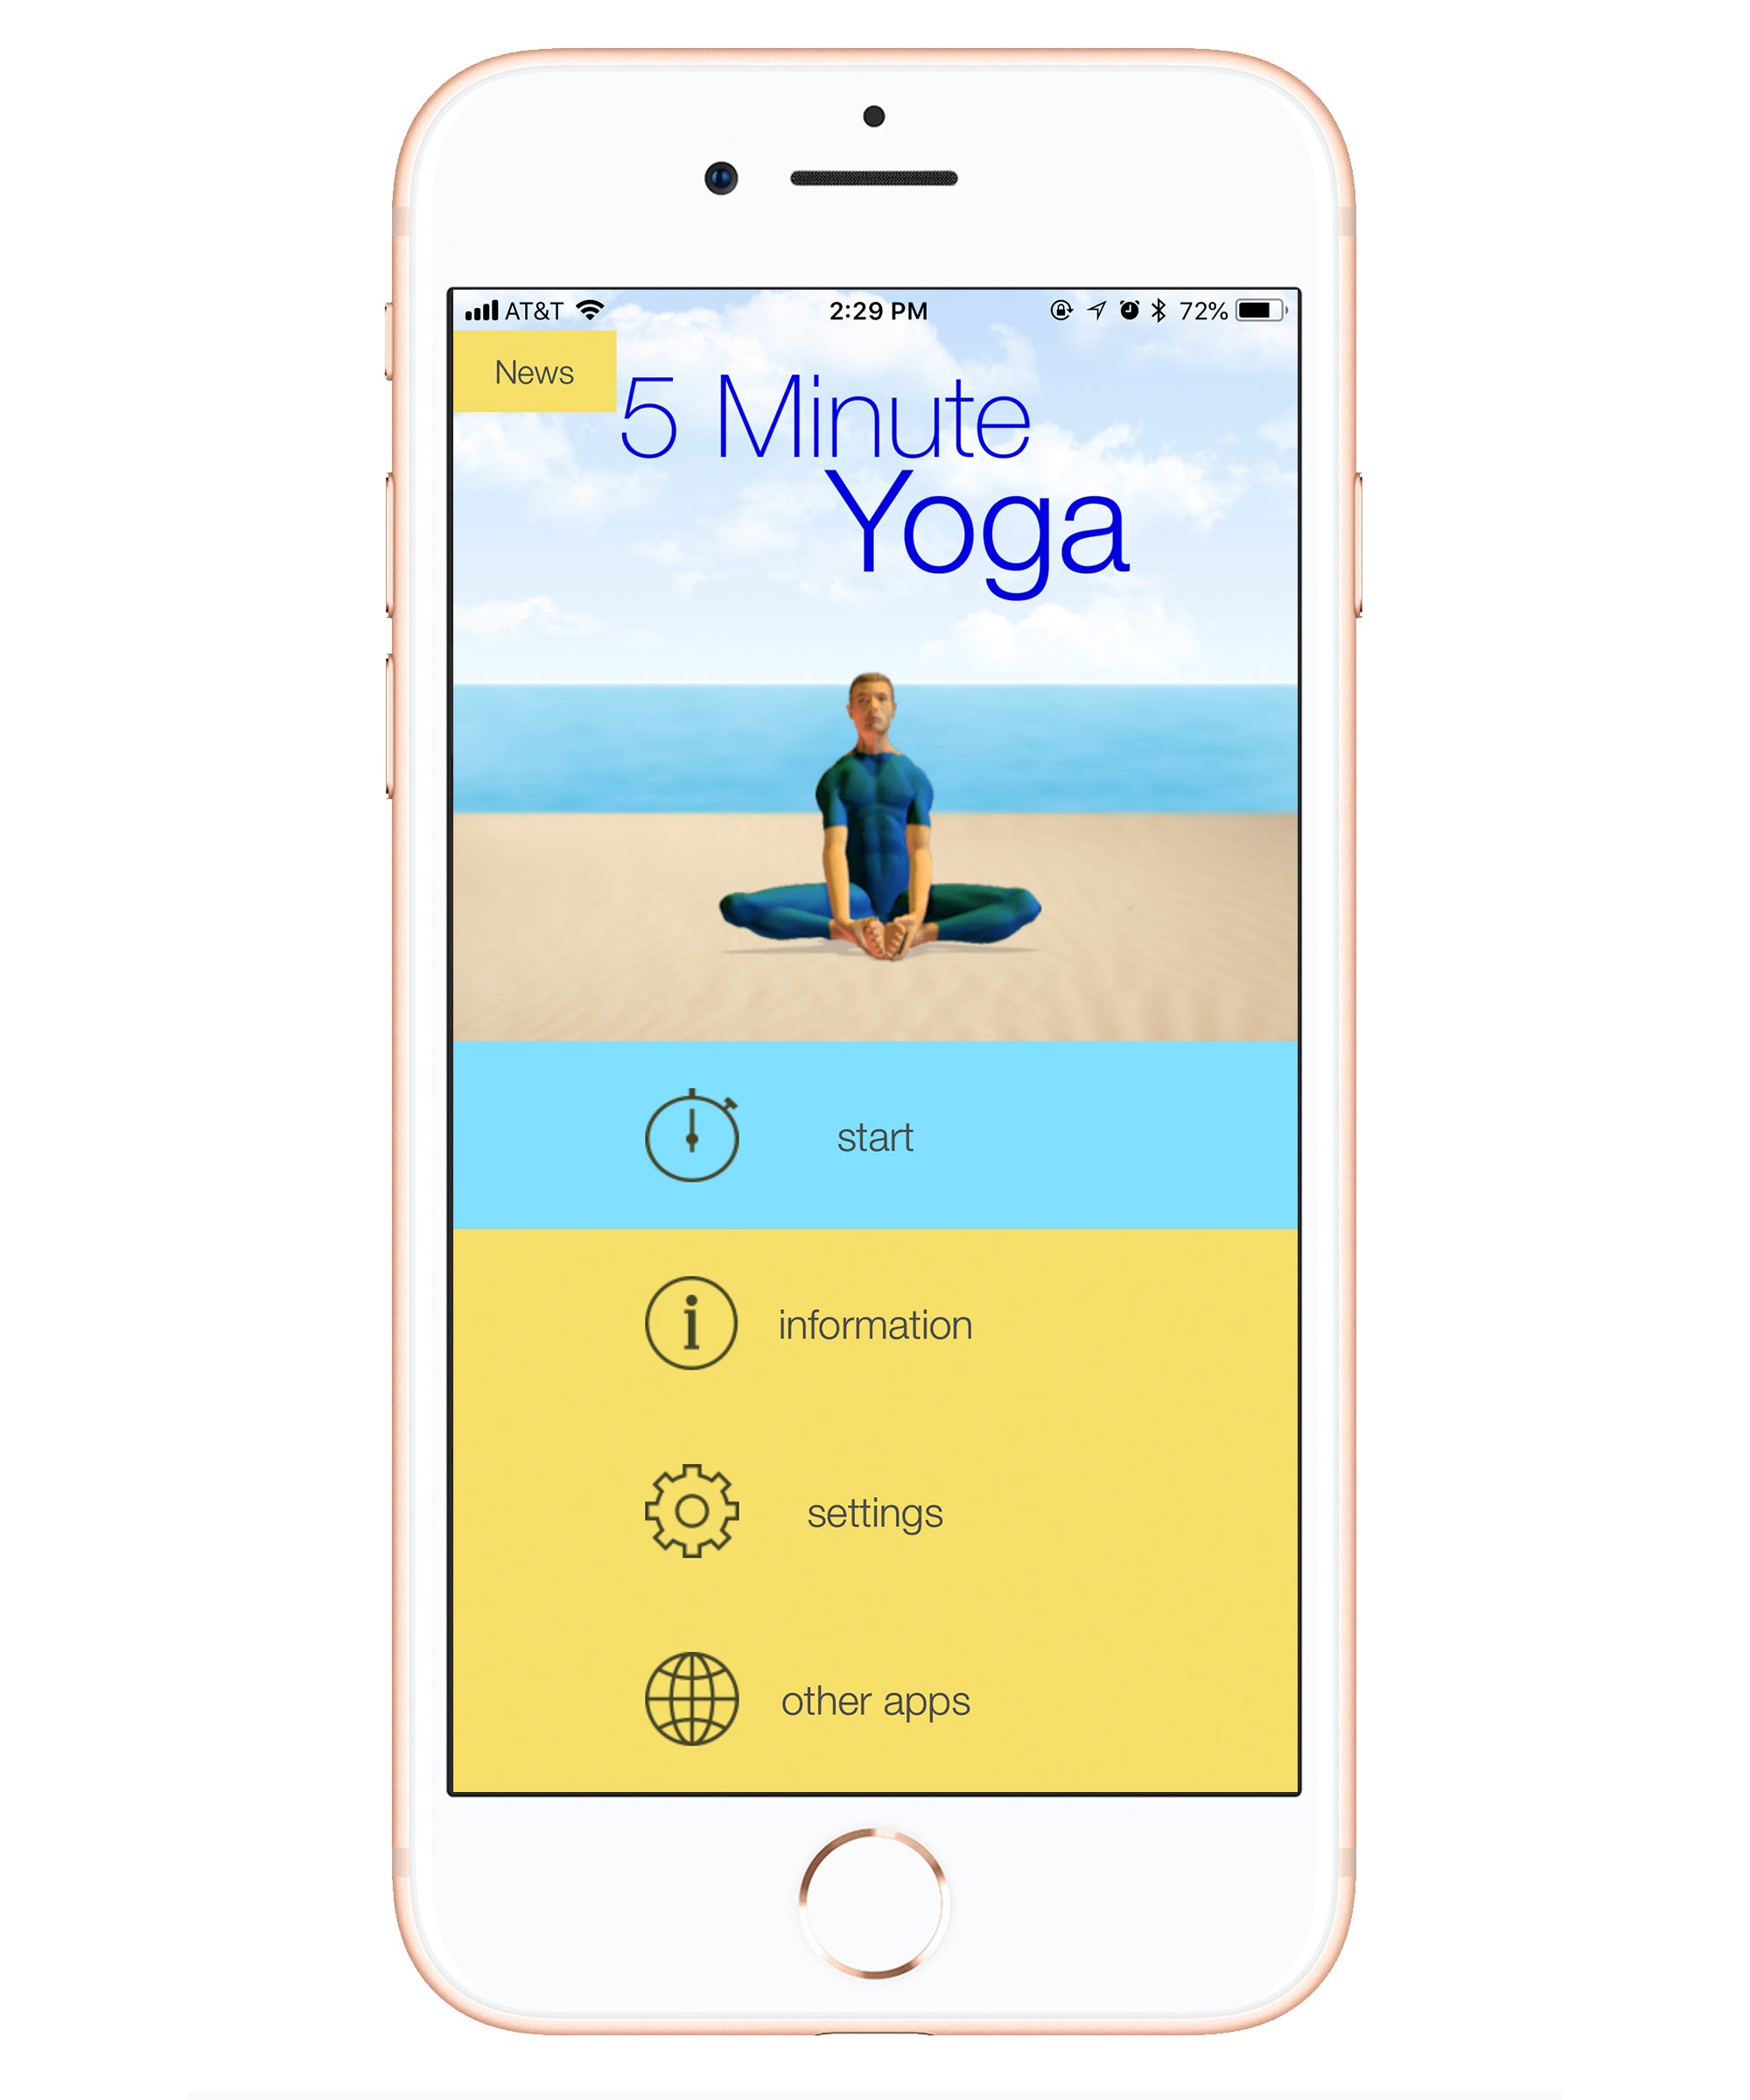 Best Yoga Apps 2019: At-Home Workouts, Poses, Zen Tips